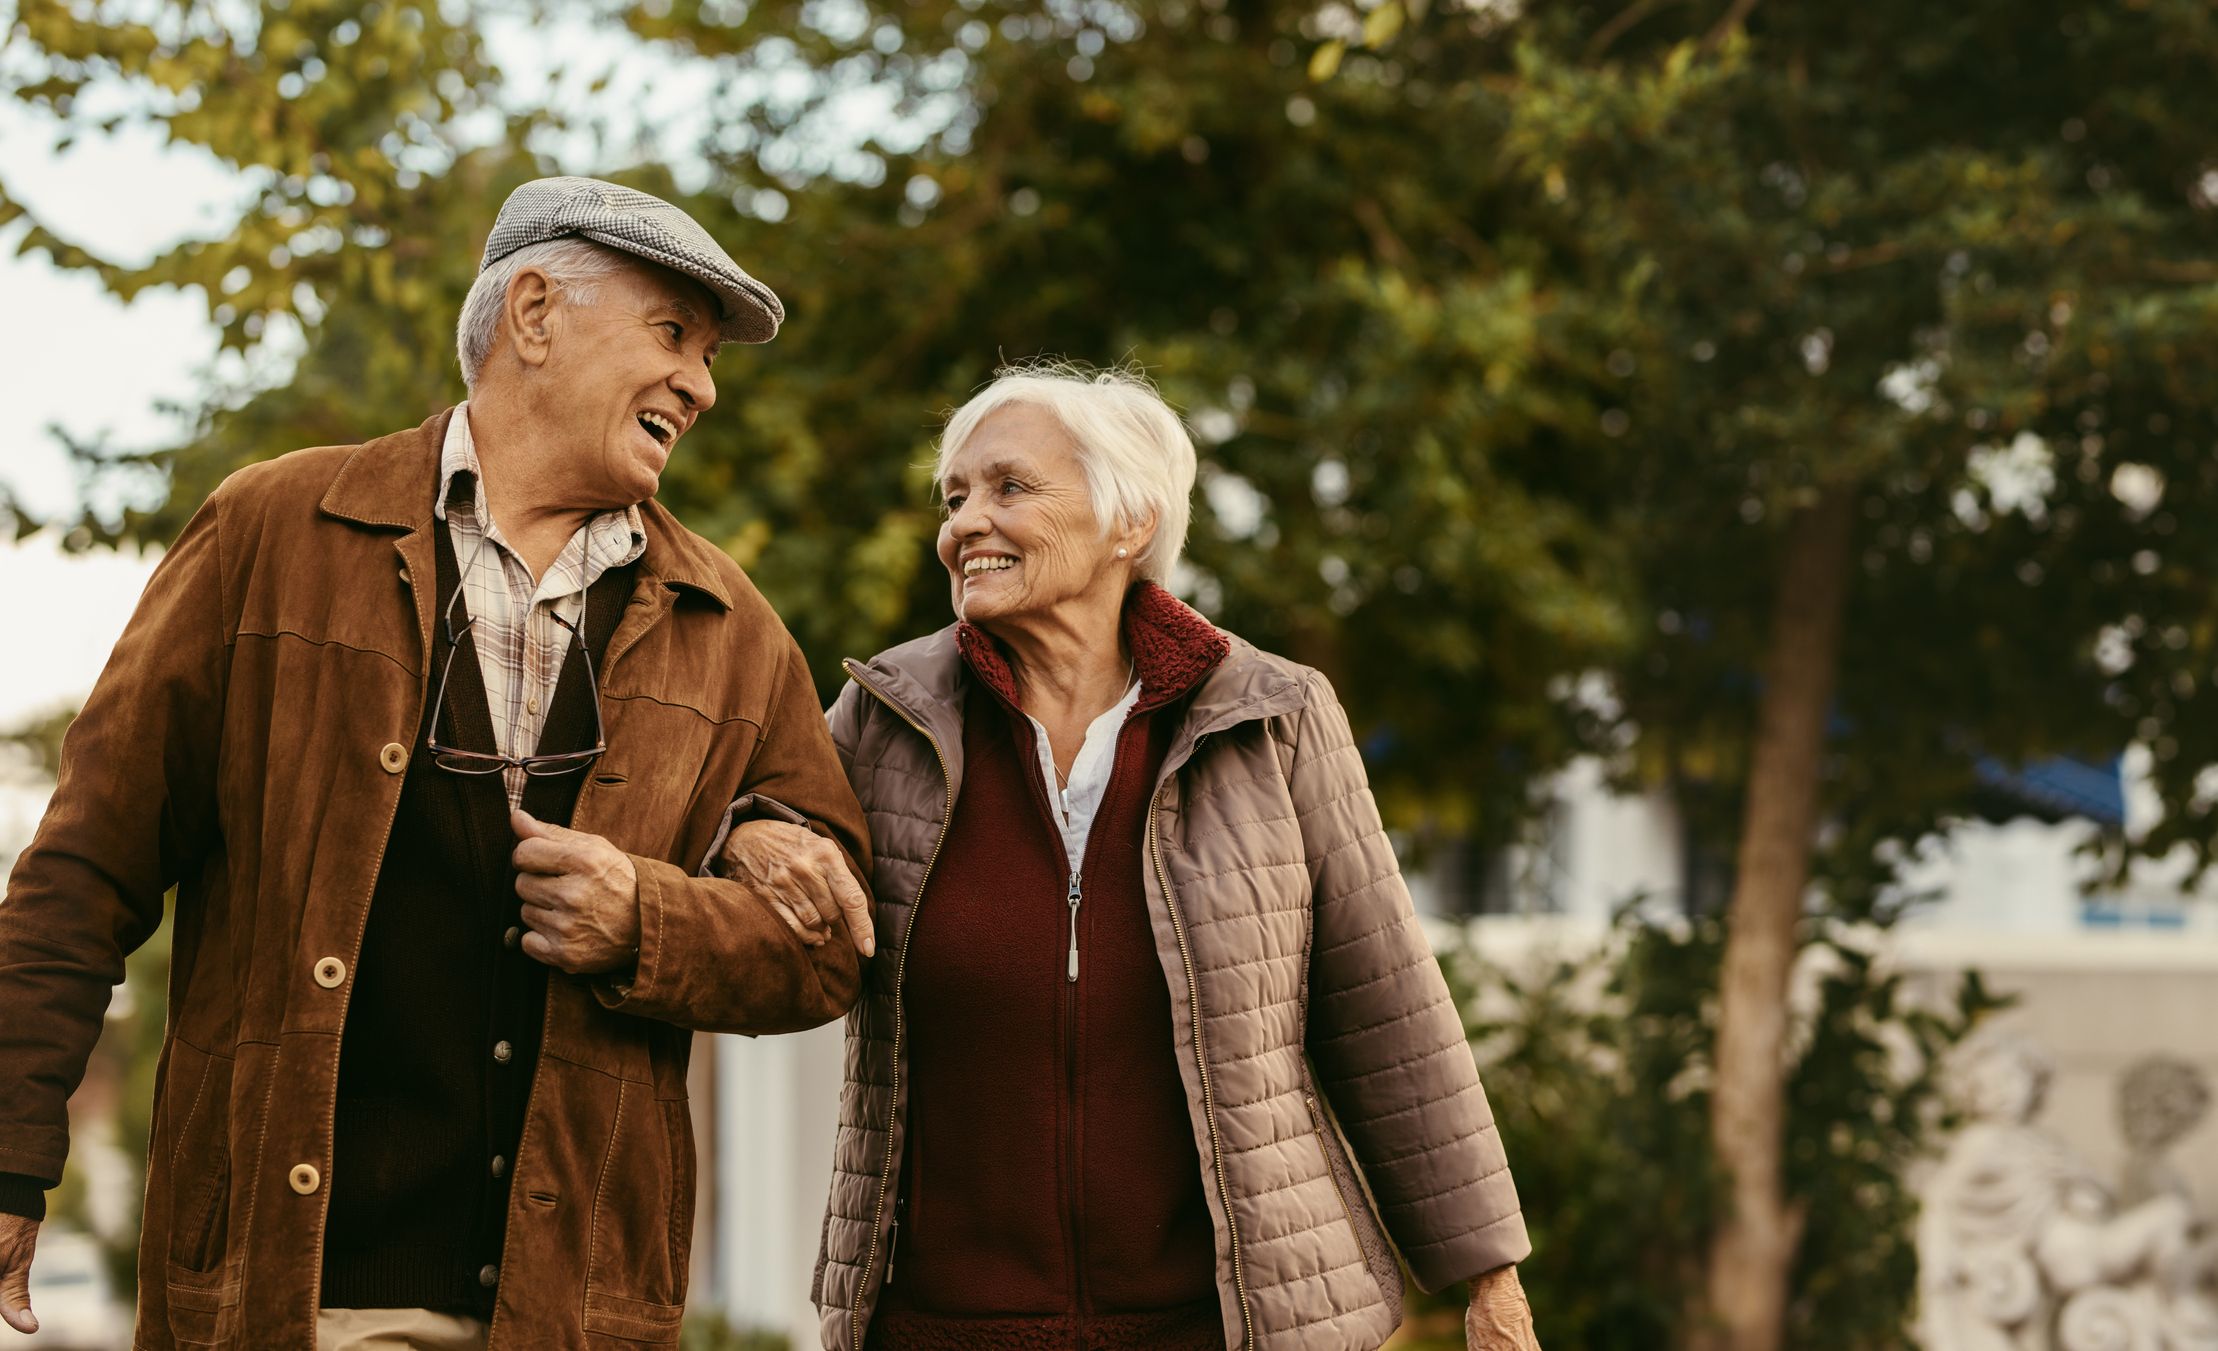 An indpenedet living community can offer the freedom to live a better life during retirement